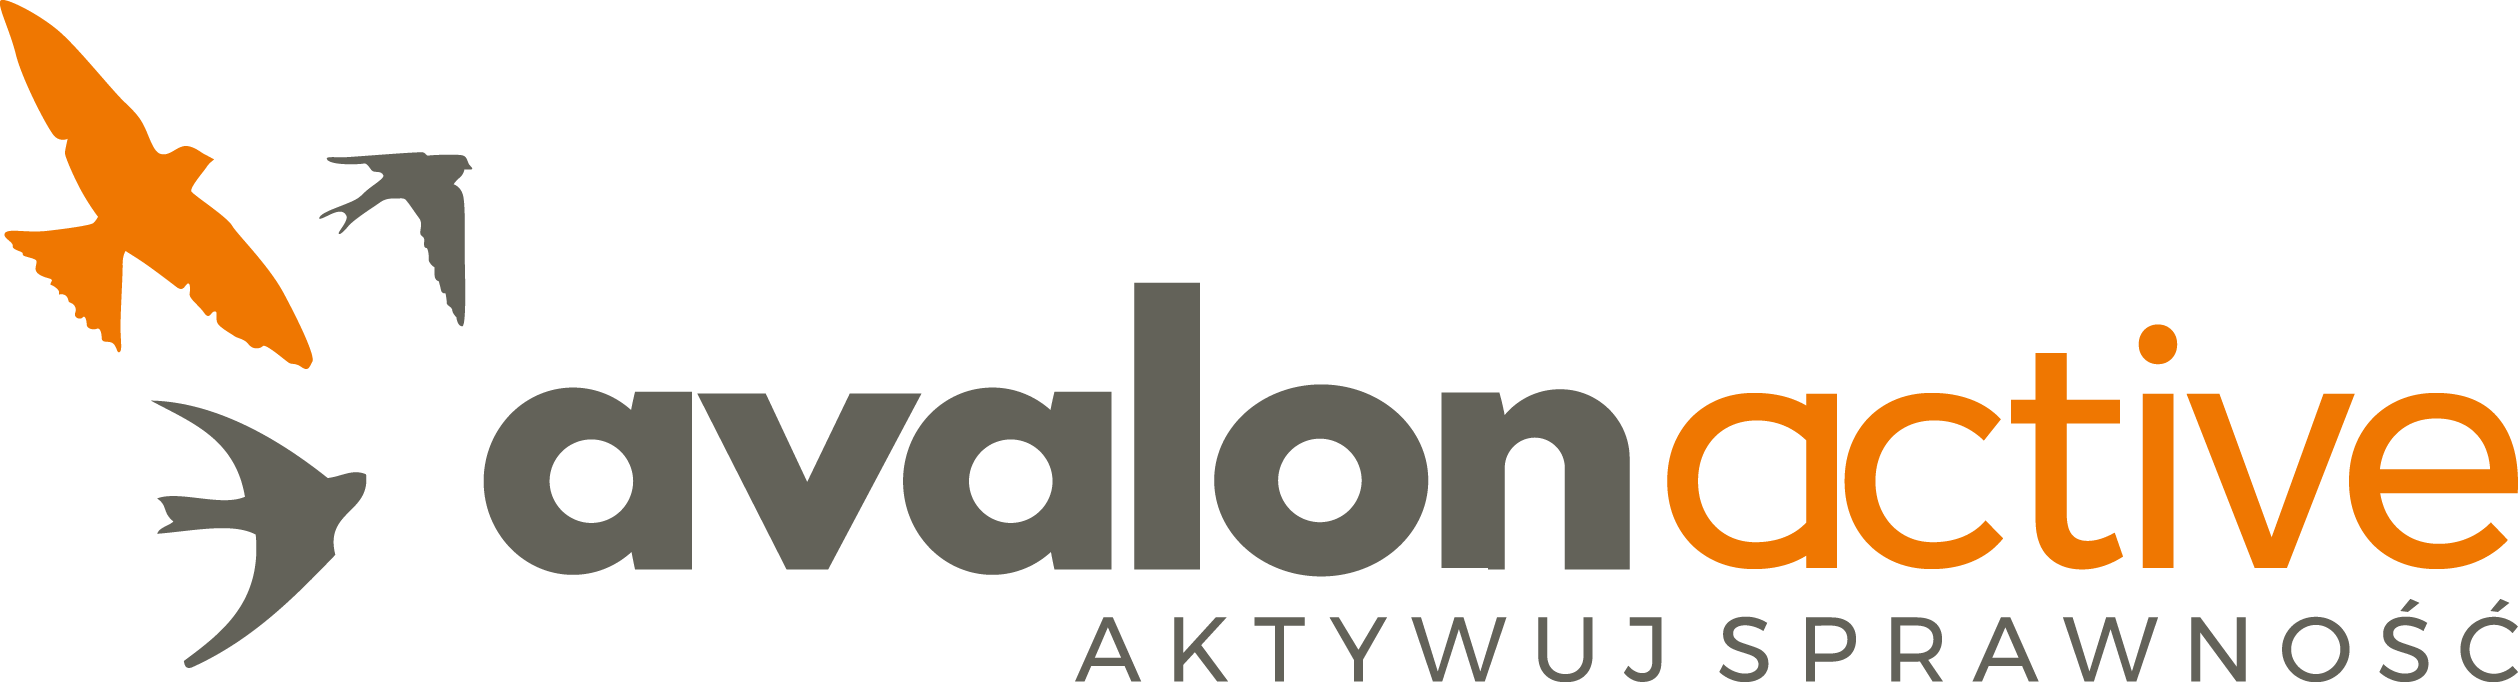 Nowe logo Avalon Active